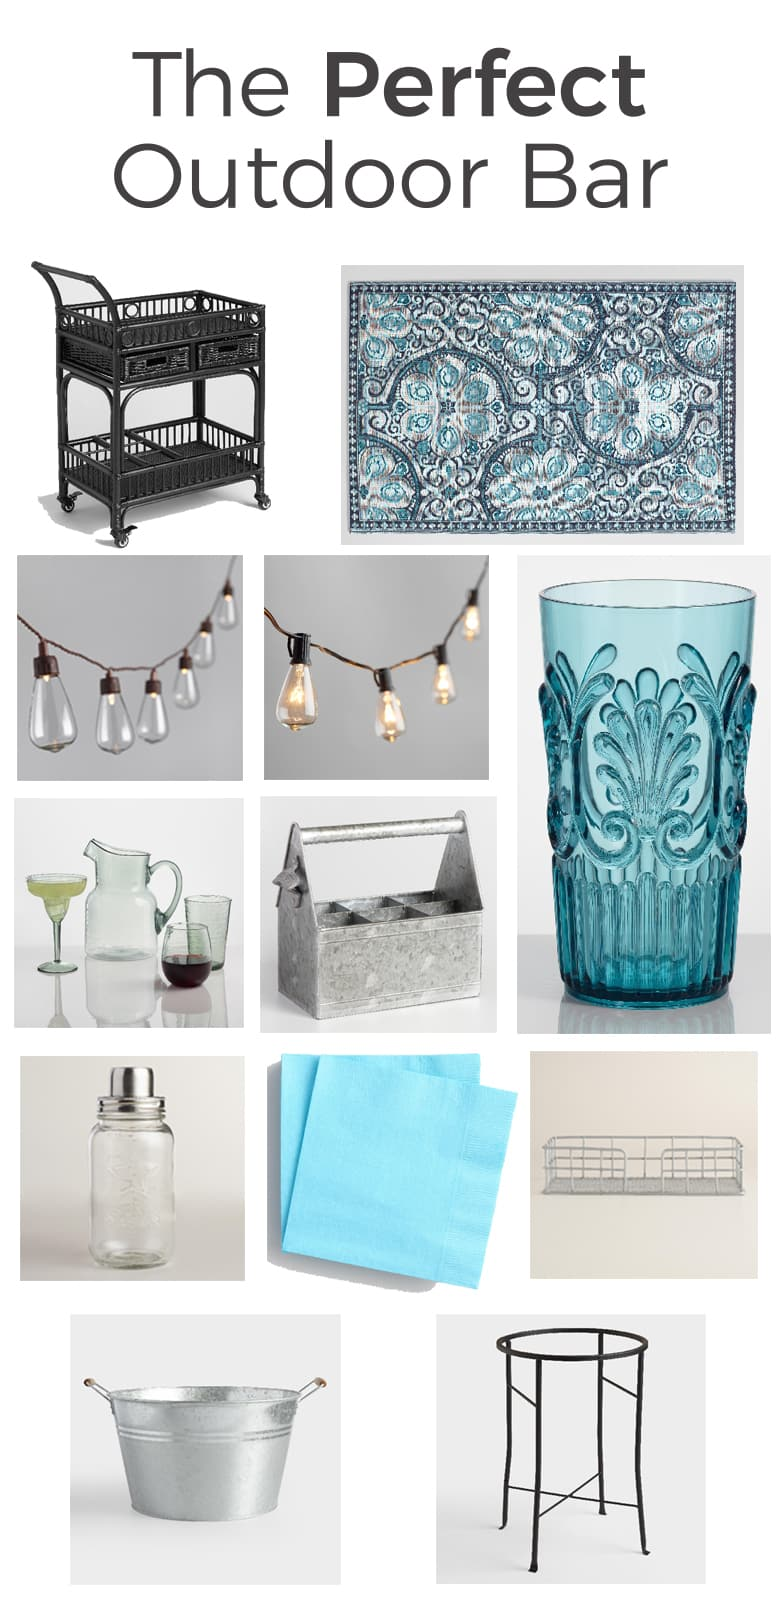 The perfect outdoor bar is a mix of classic pieces and color. Keep it unisex by sticking with a fun, yet neutral palette and galvanized steel.